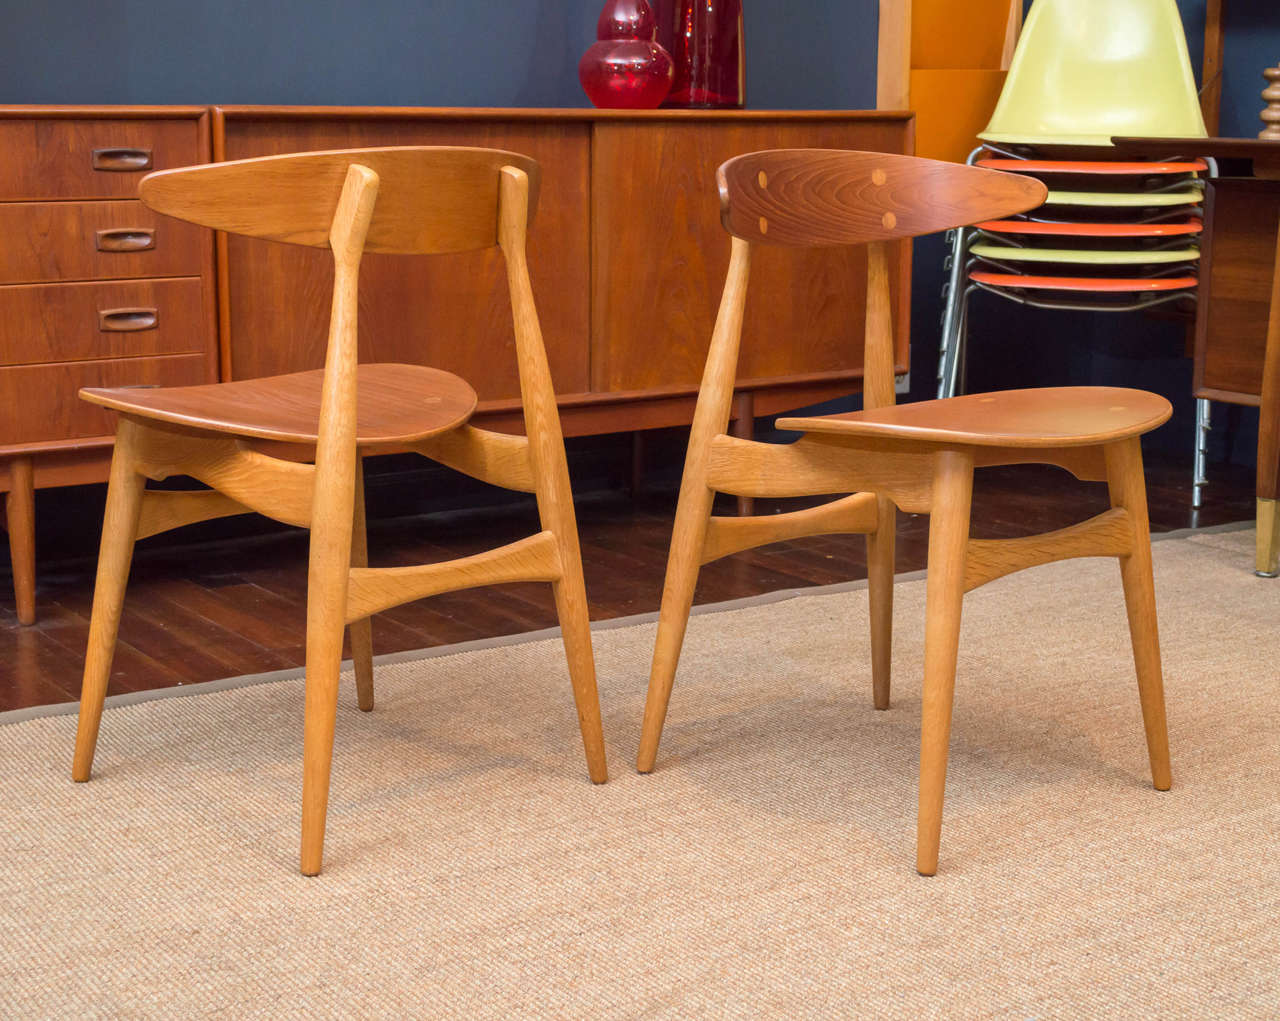 Mid-20th Century Hans J. Wegner CH33 Dining Chairs For Sale